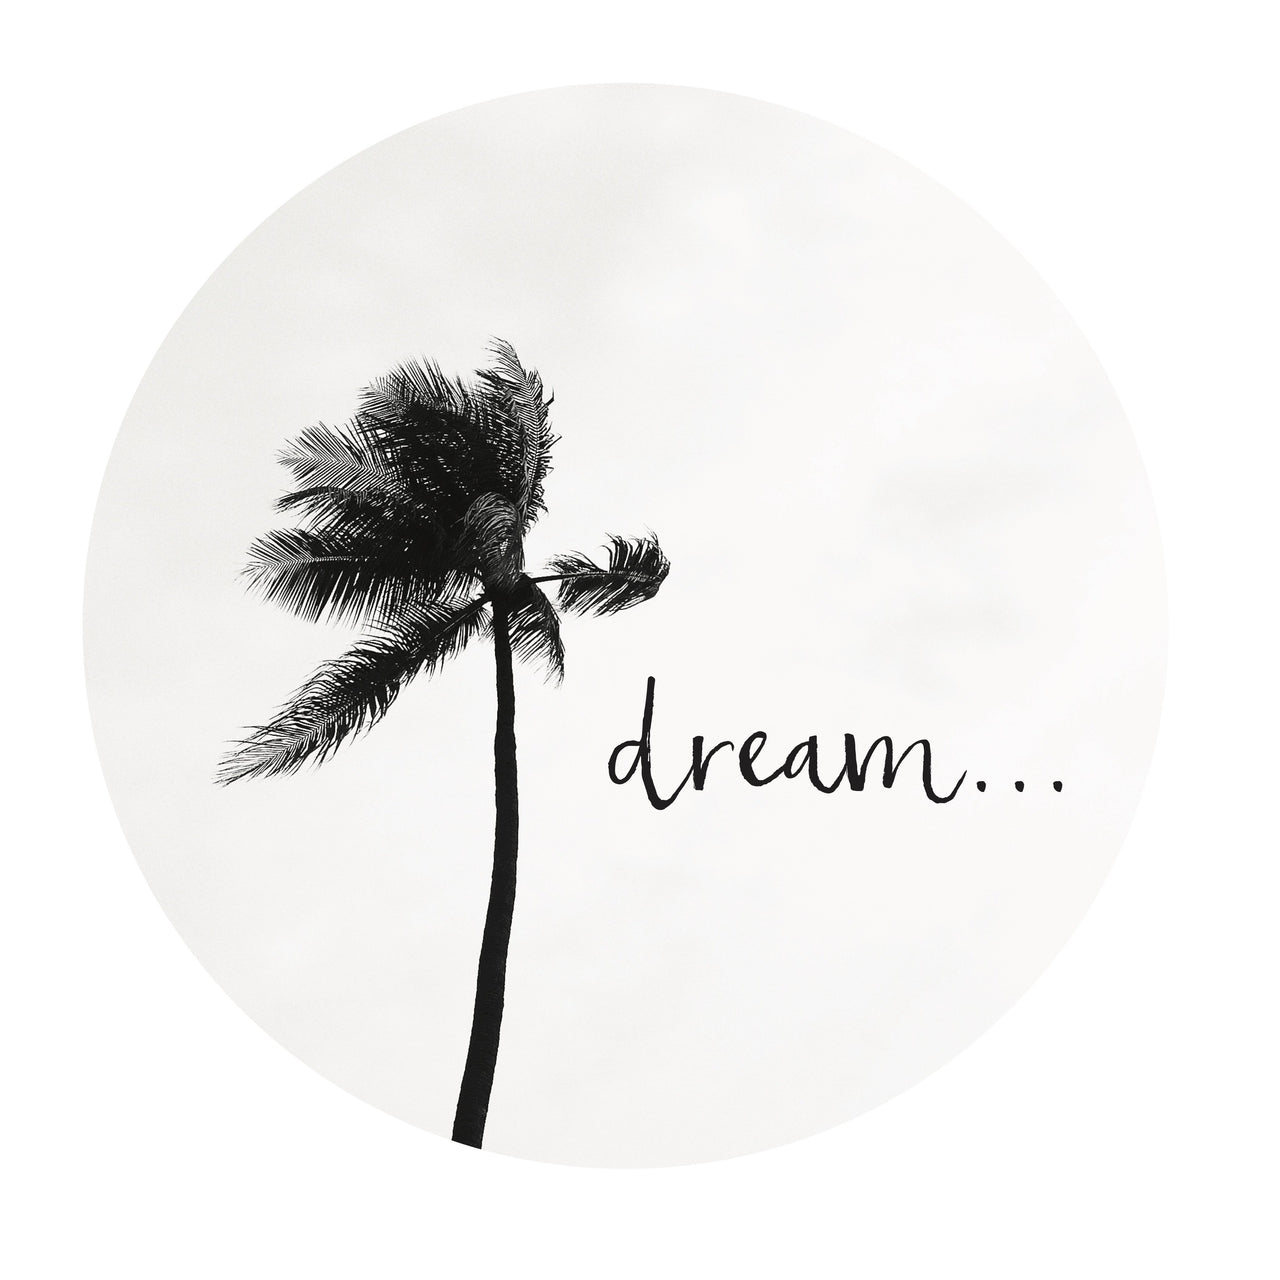 Dream - decal.